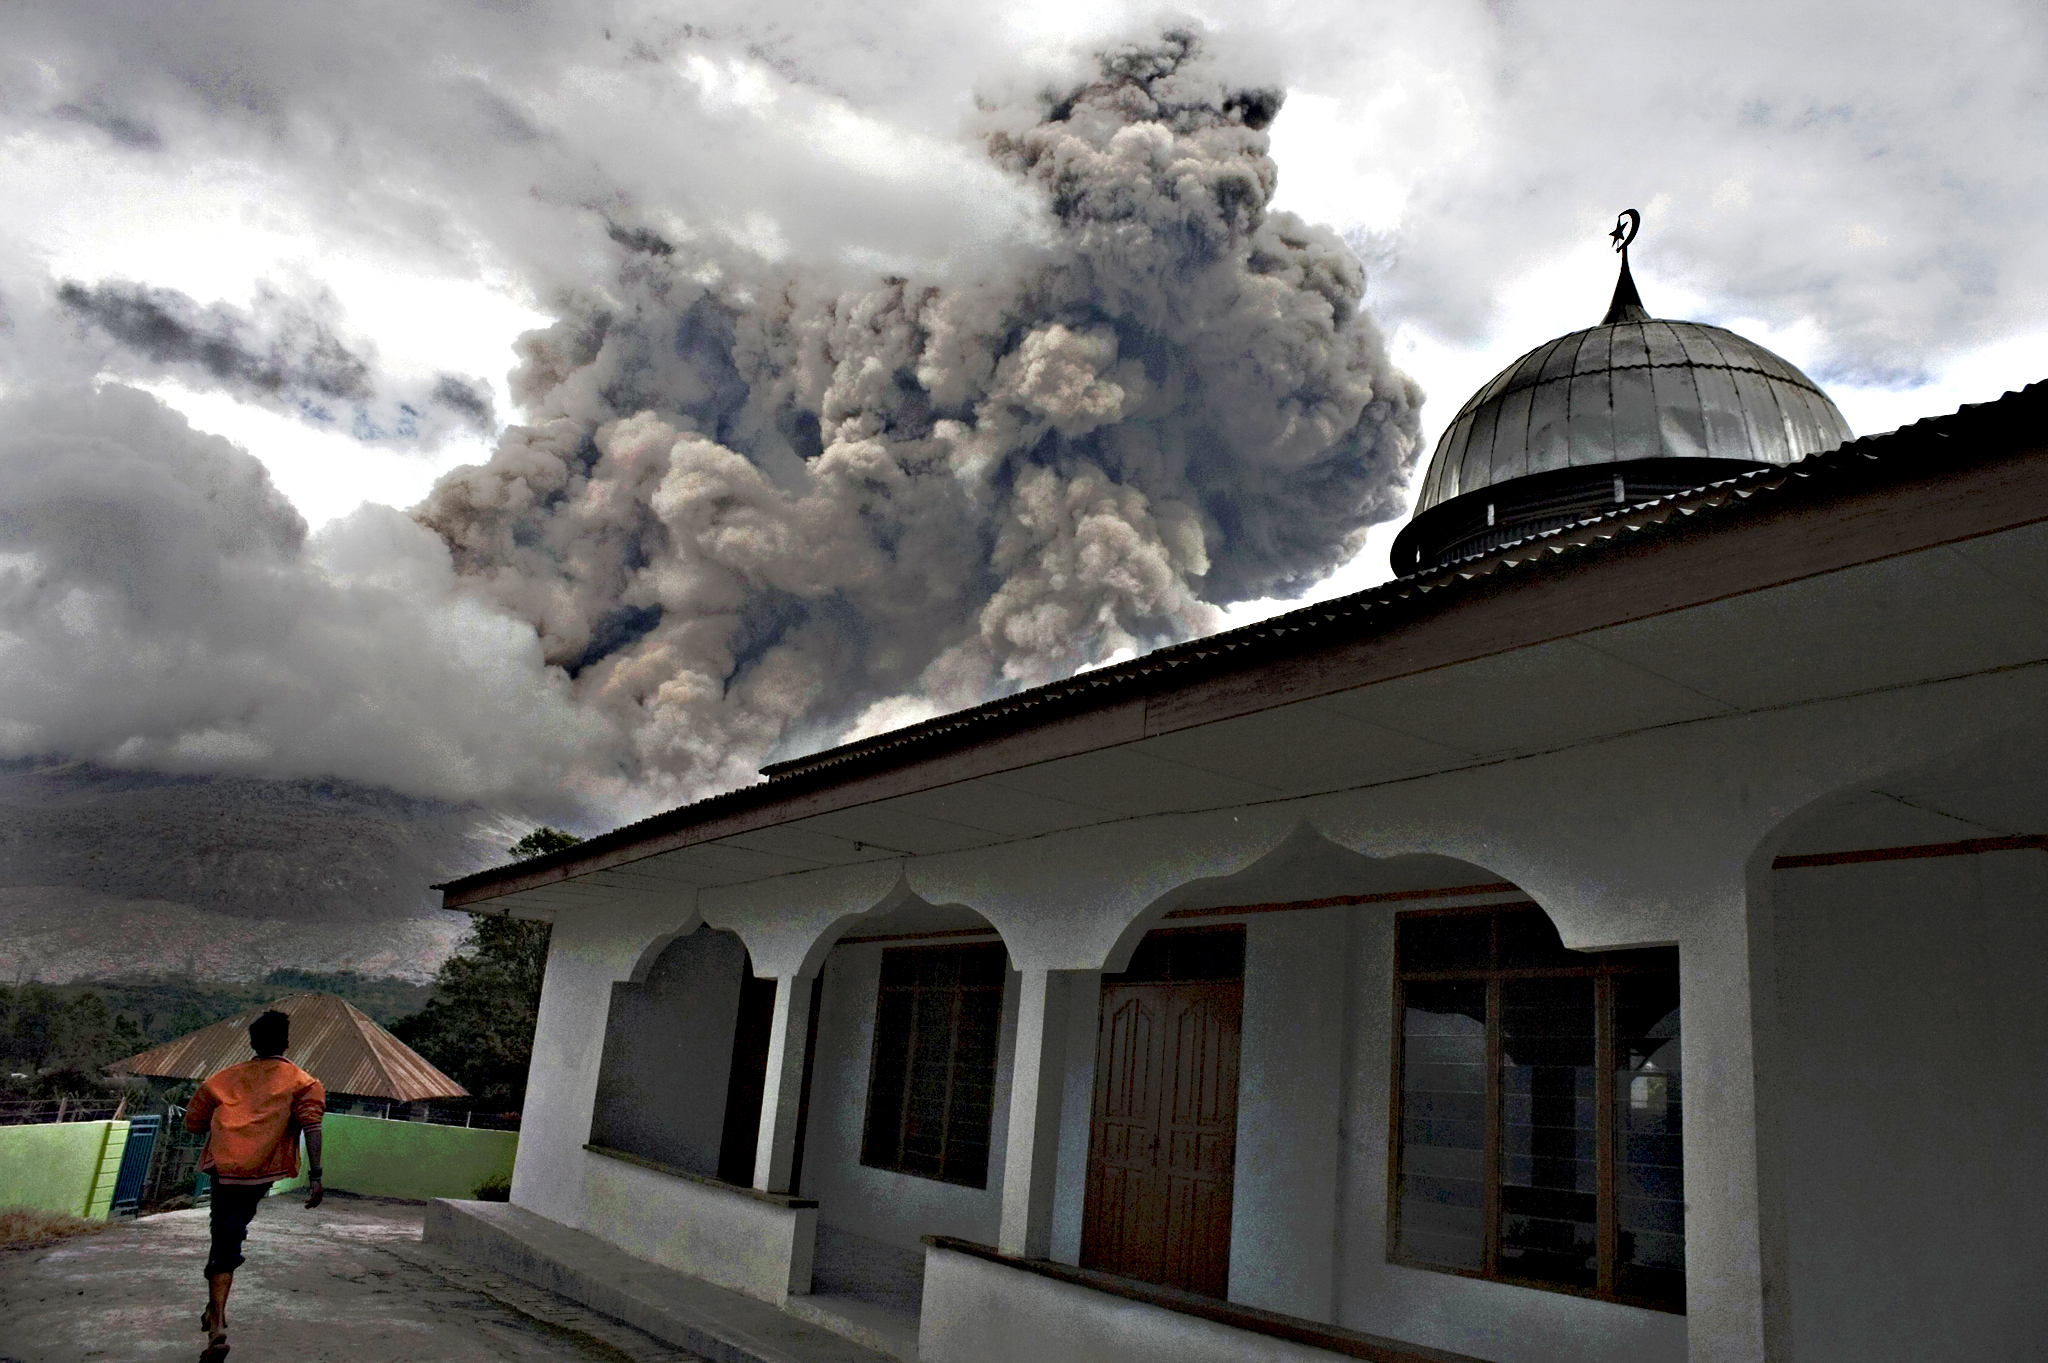 An Indonesian man stands next to a mosque in the village of Tiga Serangkai in Karo, North Sumatra on Wednesday, as mount Sinabung spews volcanic ash in the distance. Sinabung is one of 129 active volcanoes in Indonesia, which sits on the Pacific Ring of Fire, a belt of seismic activity running around the basin of the Pacific Ocean